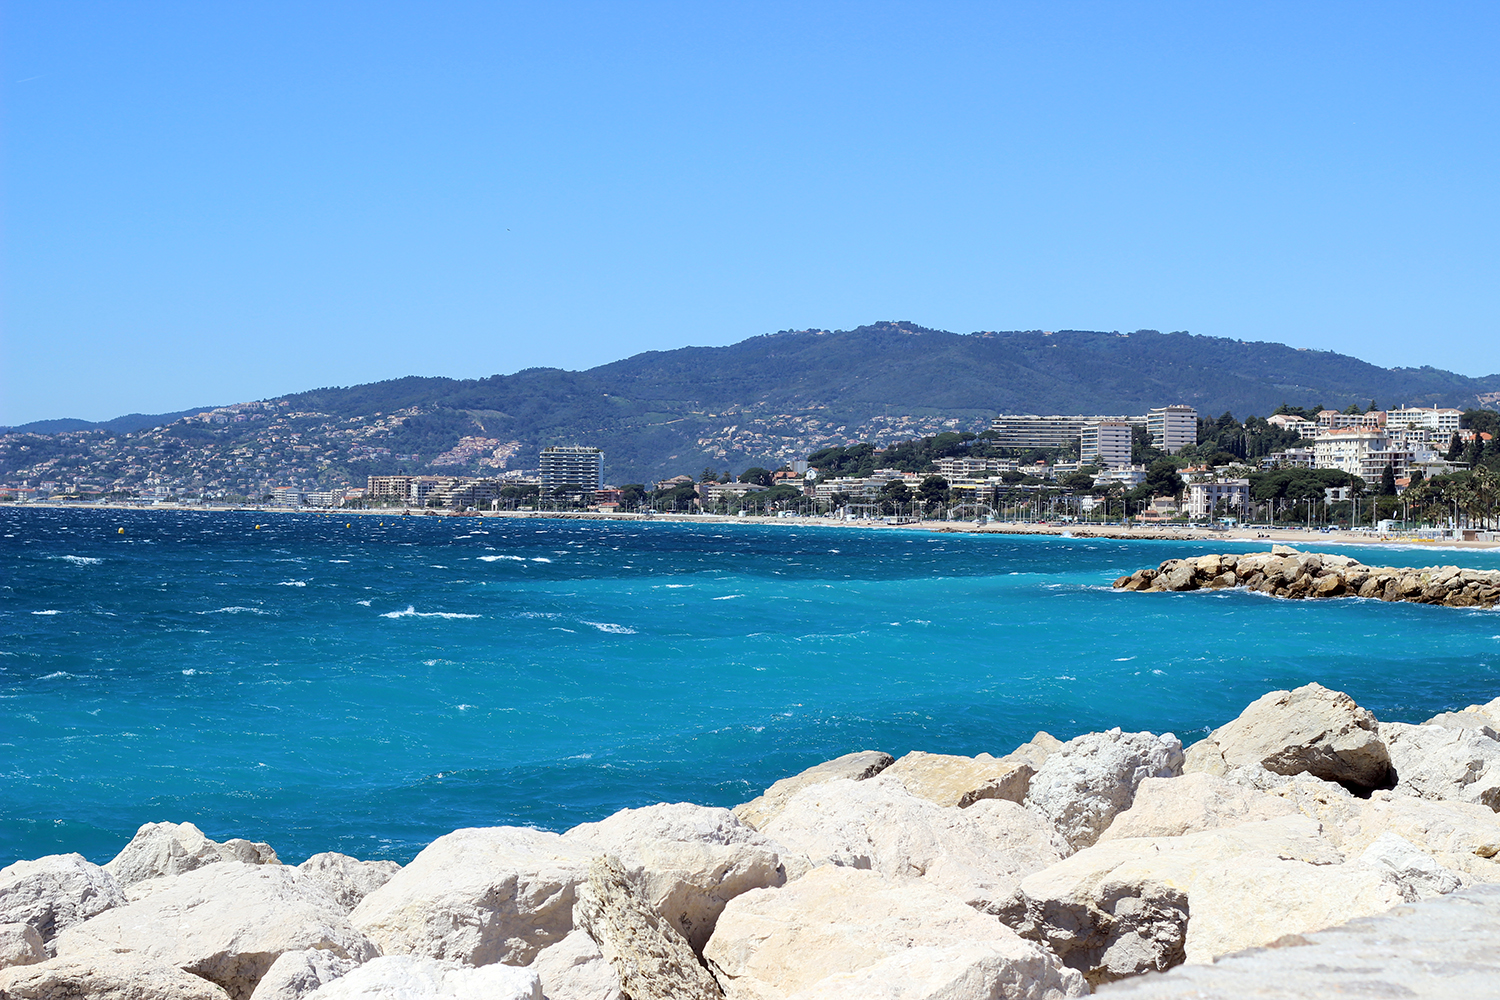 CANNES FRENCH RIVIERA MARE TURCHINO